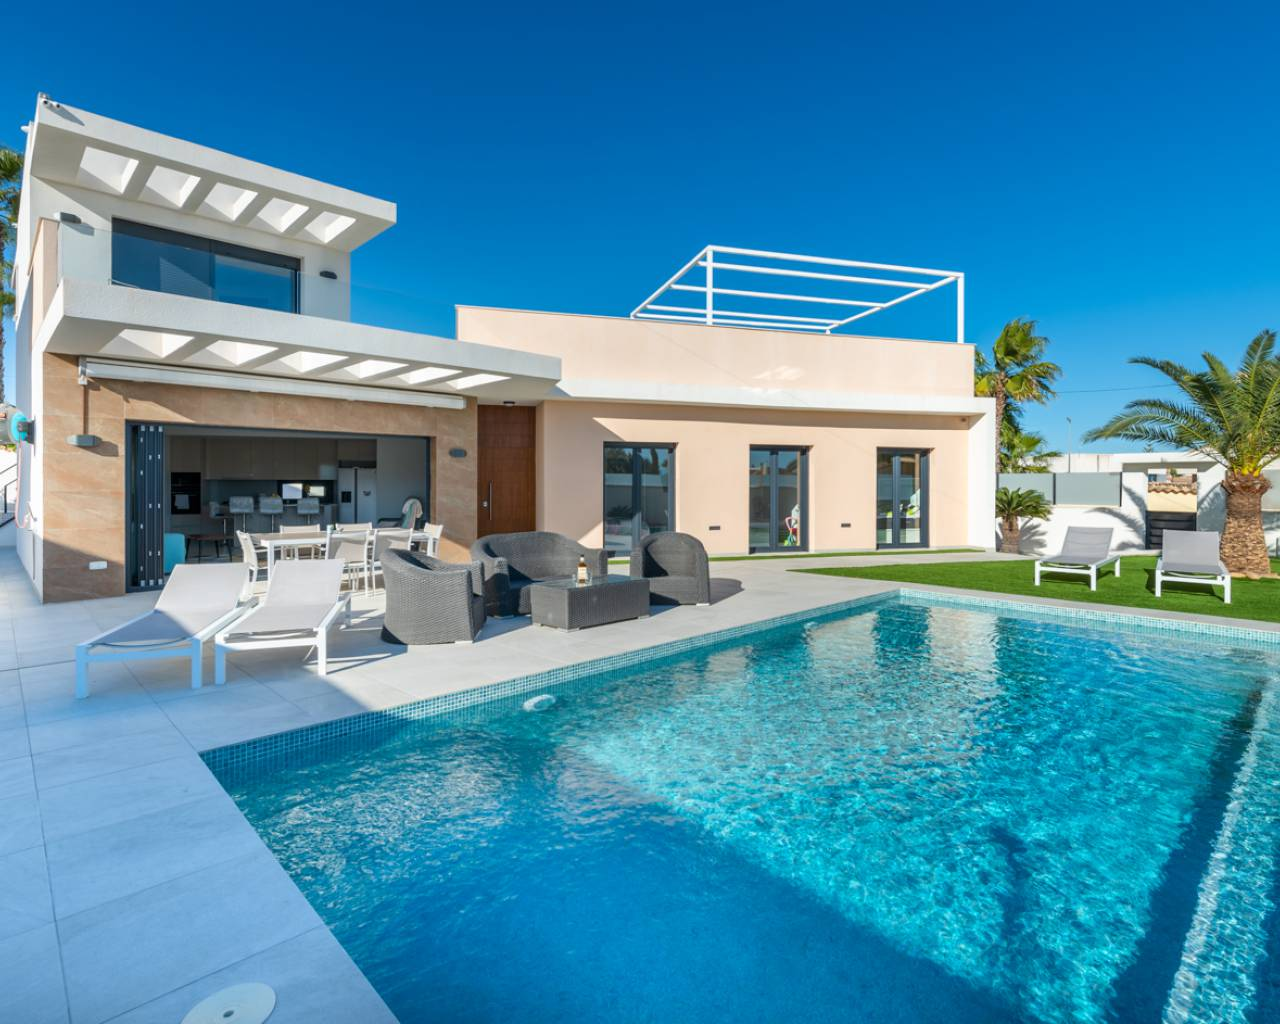 Swimming pool view-Swimming pool view-Beautiful; 4 Bedroom Villa for sale in Quesada